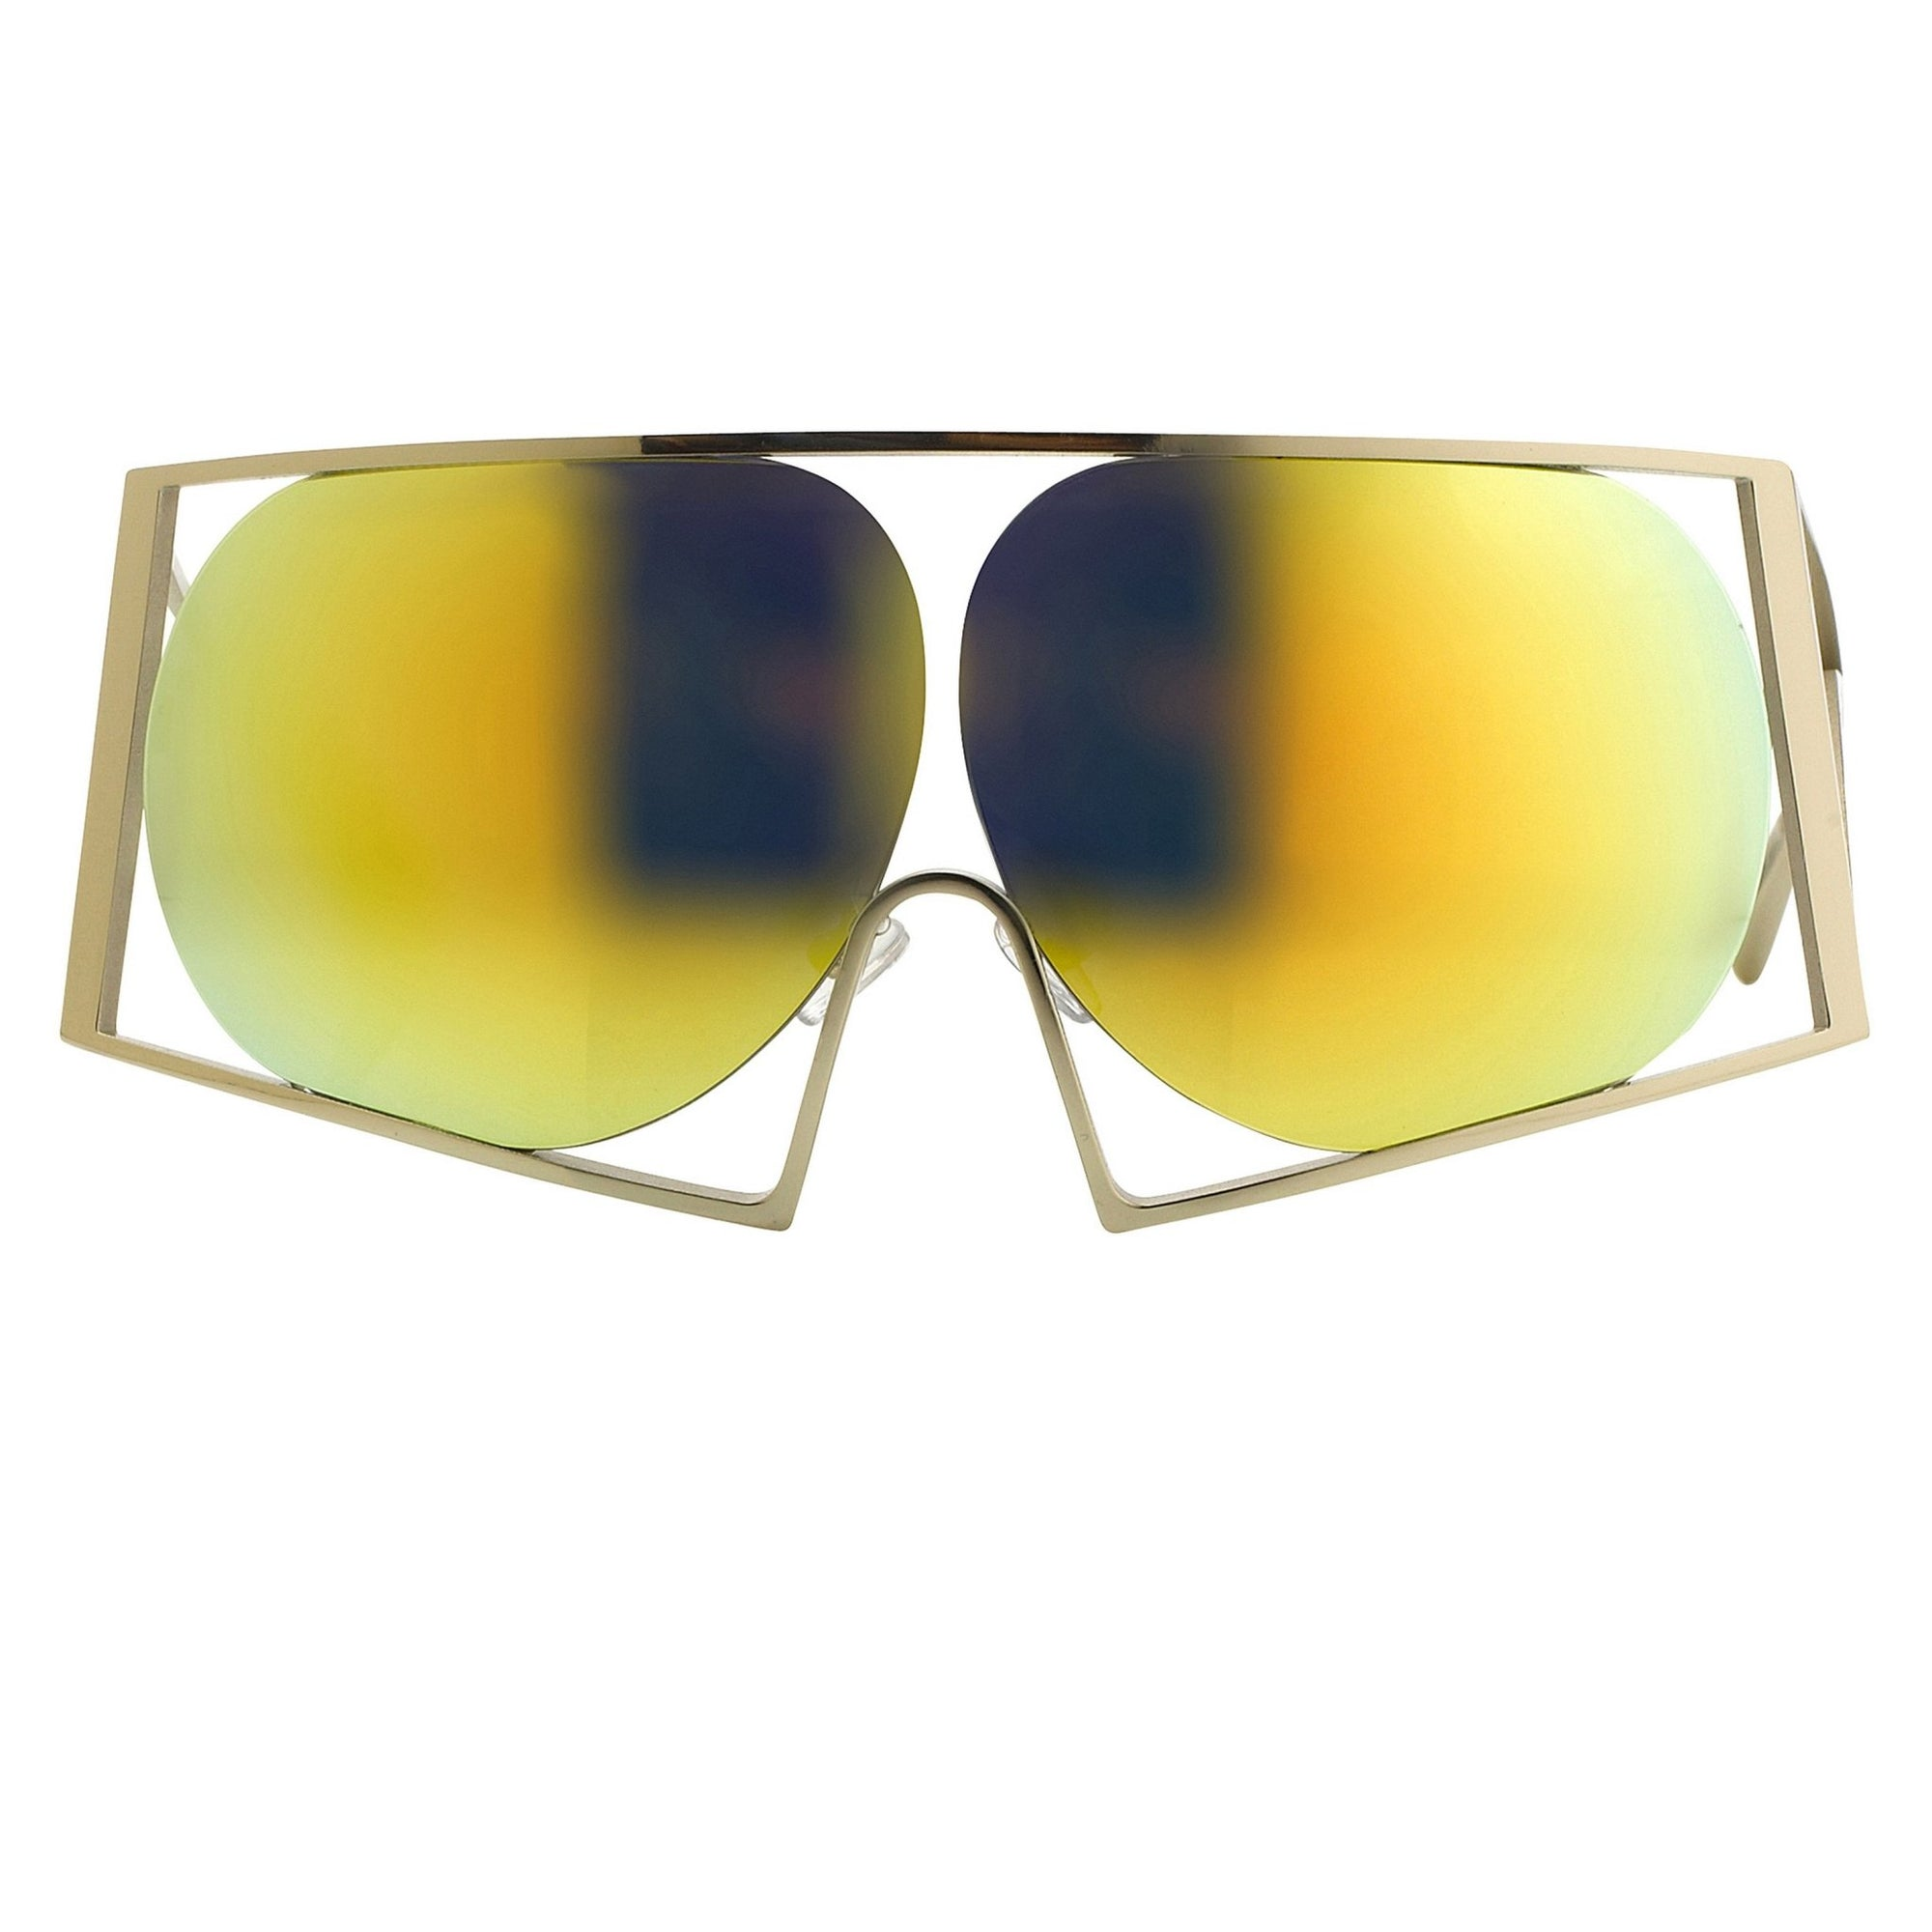 Todd Lynn Sunglasses Special Frame Gold and Revo Yellow Lenses - TL4C1SUN - Watches & Crystals